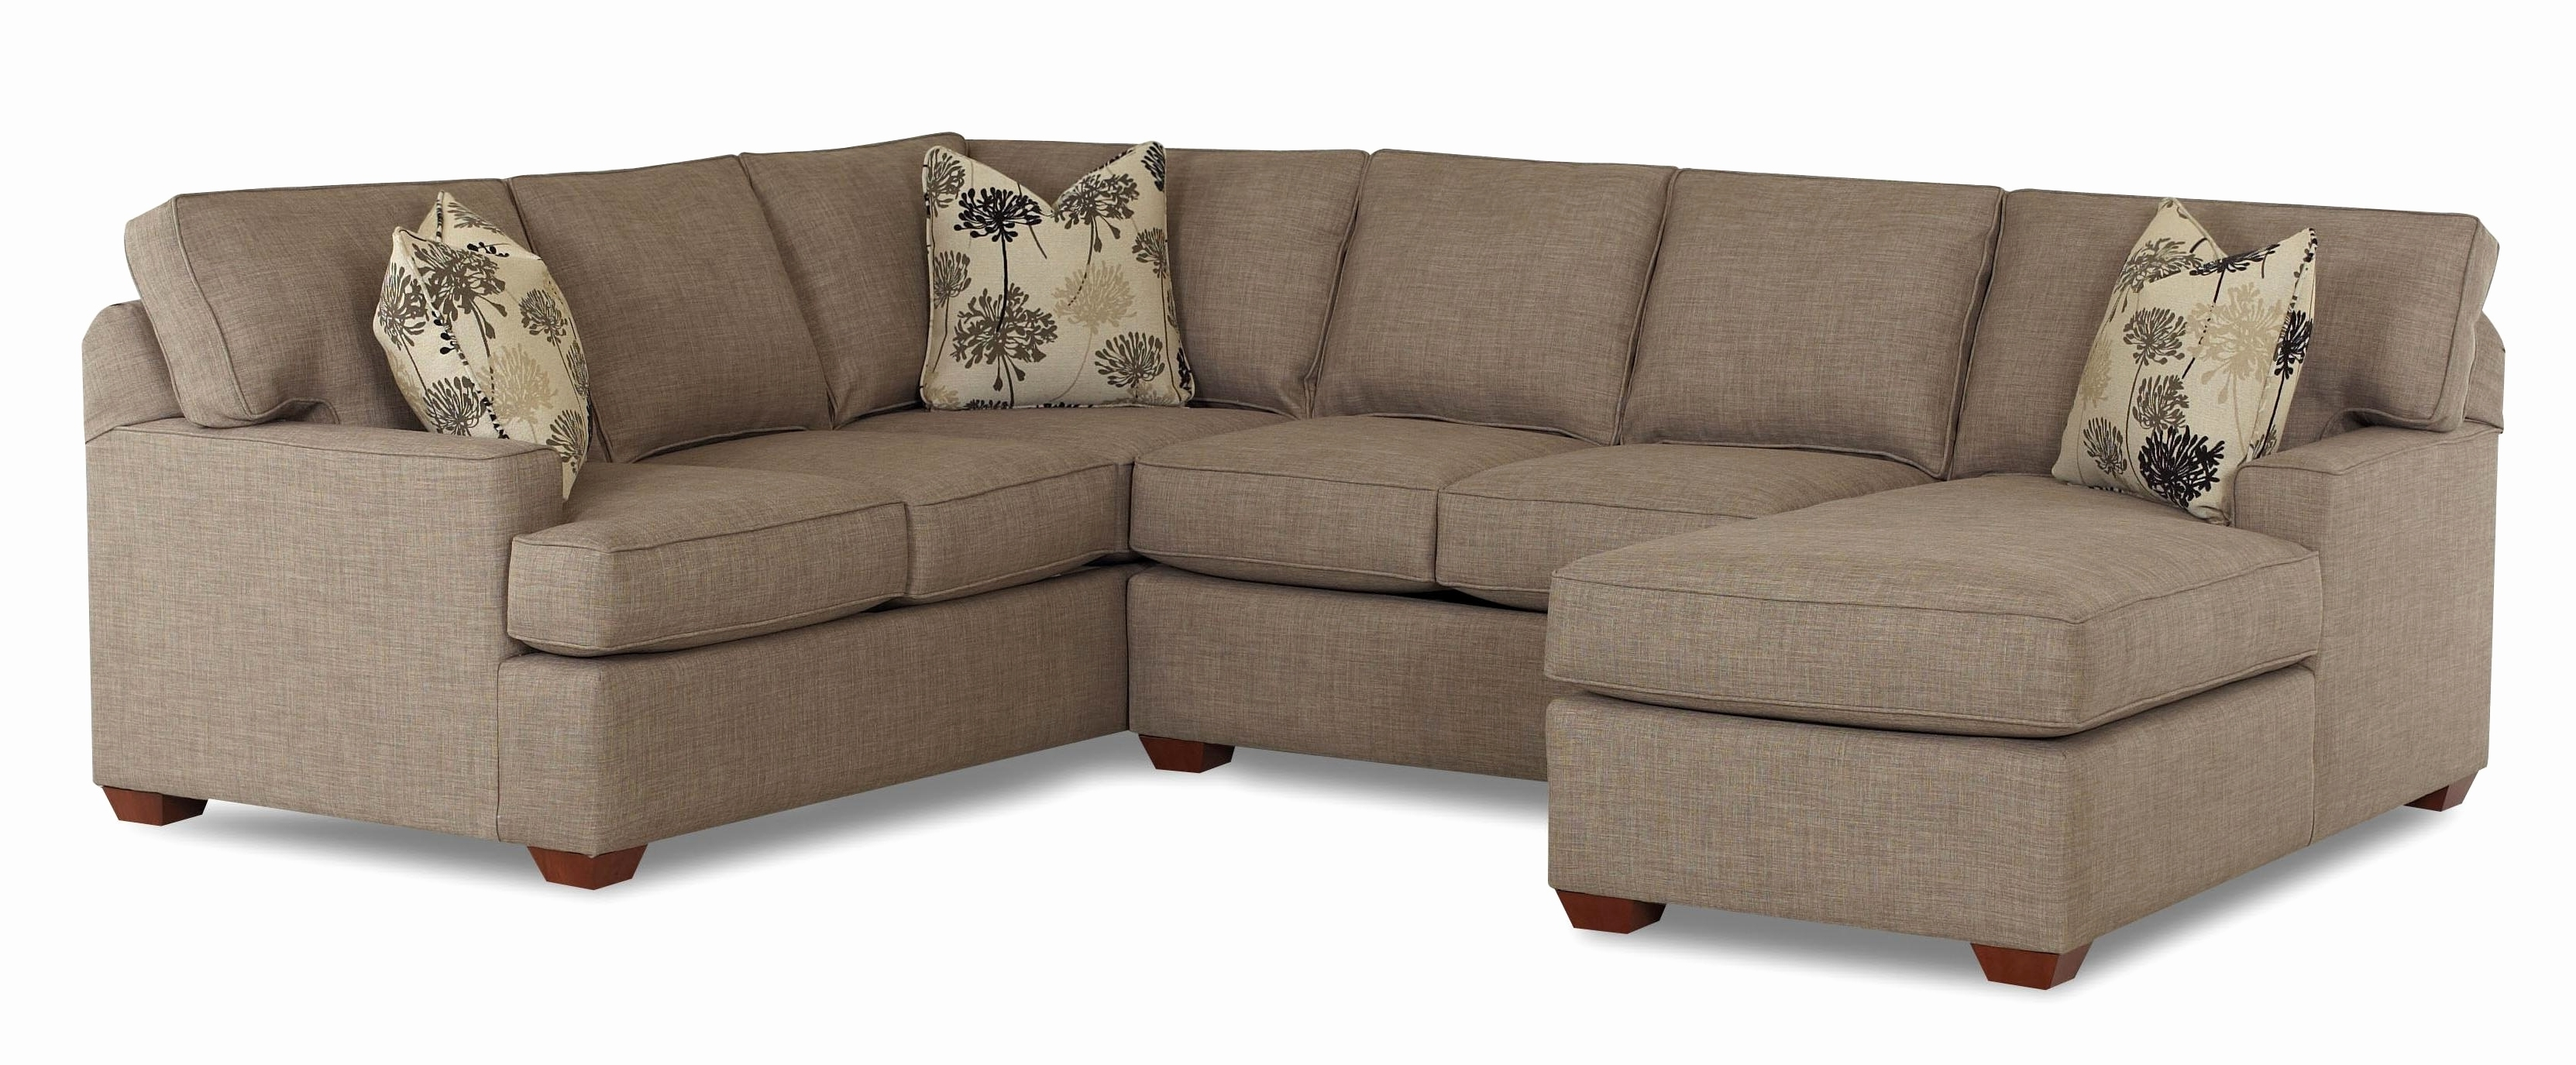 3 Piece Sectional Sofas With Chaise In Recent Luxury U Shaped Sectional With 2 Chaise 2018 – Couches And Sofas Ideas (Gallery 13 of 15)